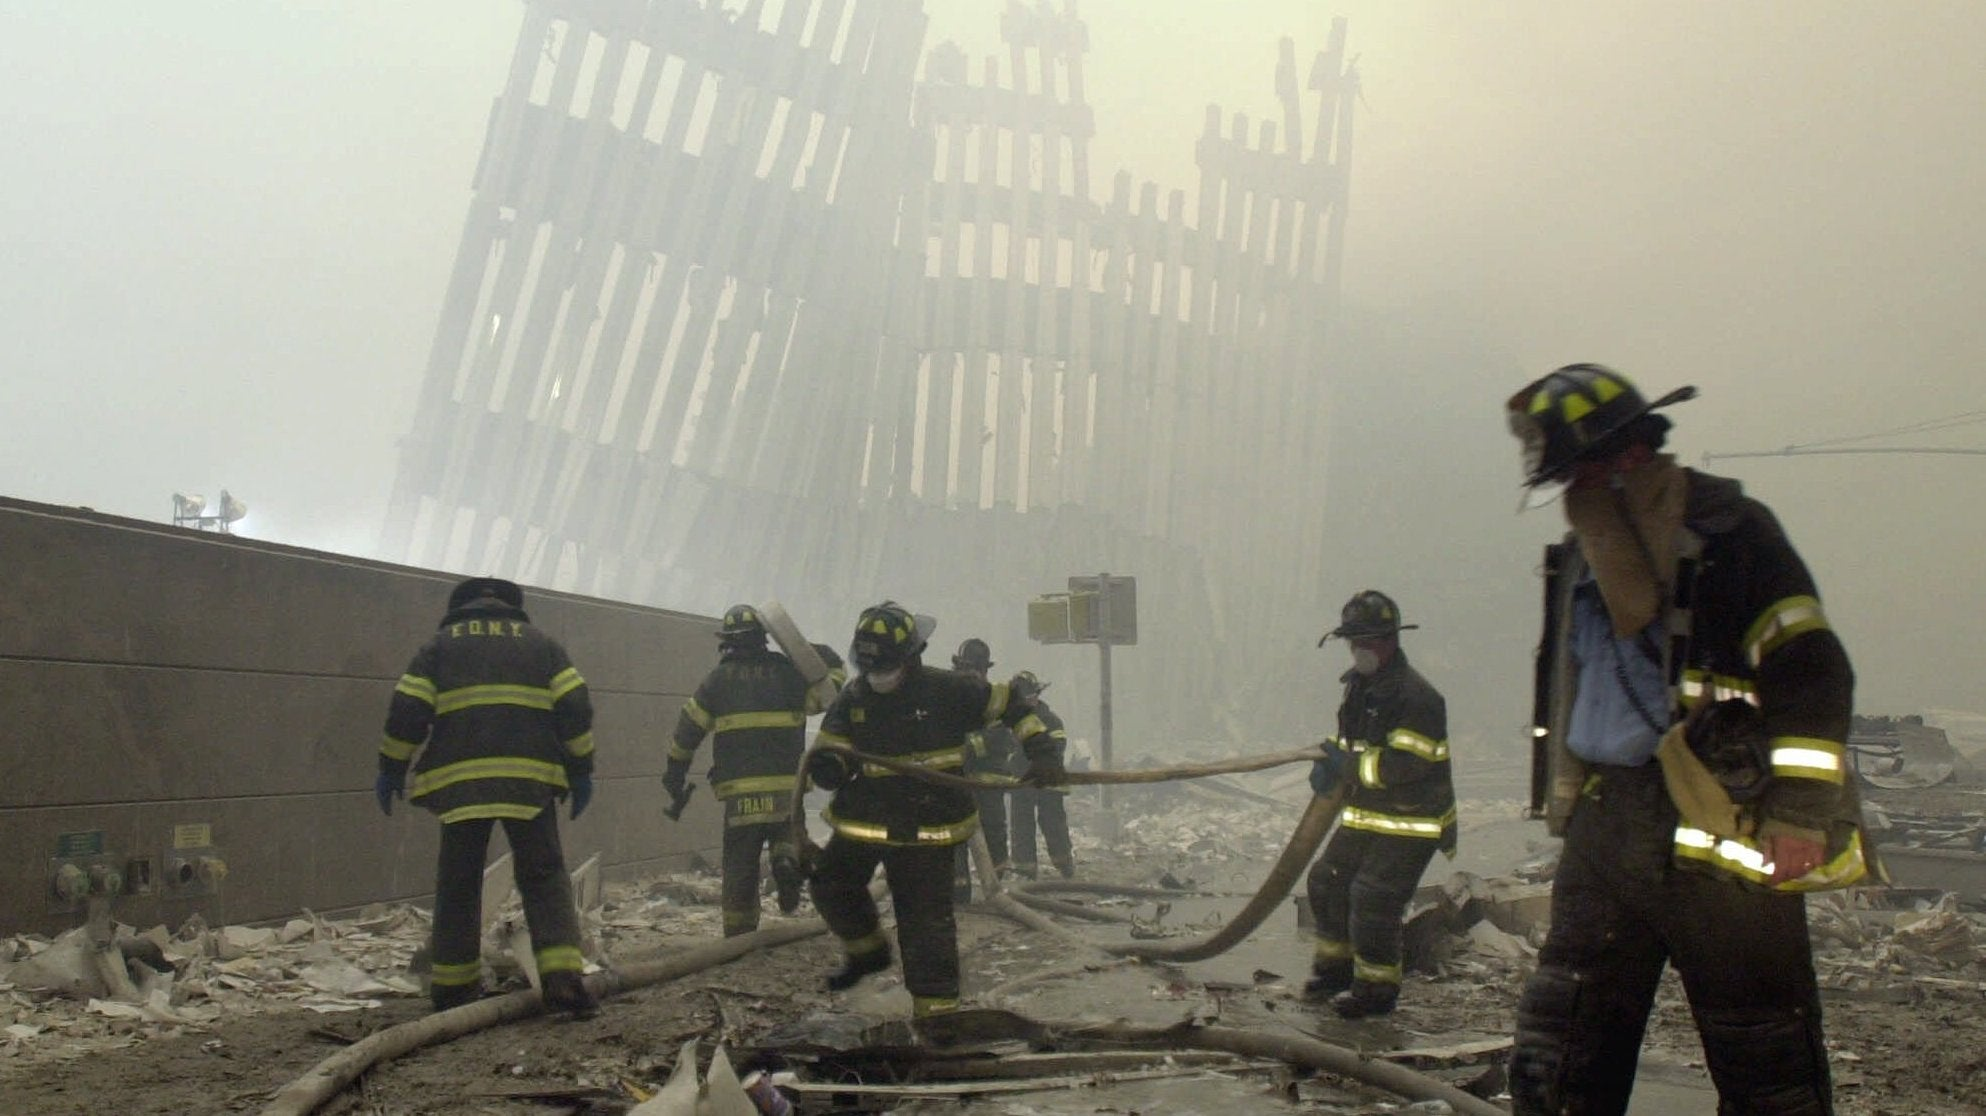 Twitter Moves To Stop Spread Of Hacked 9/11 Lawsuit Files